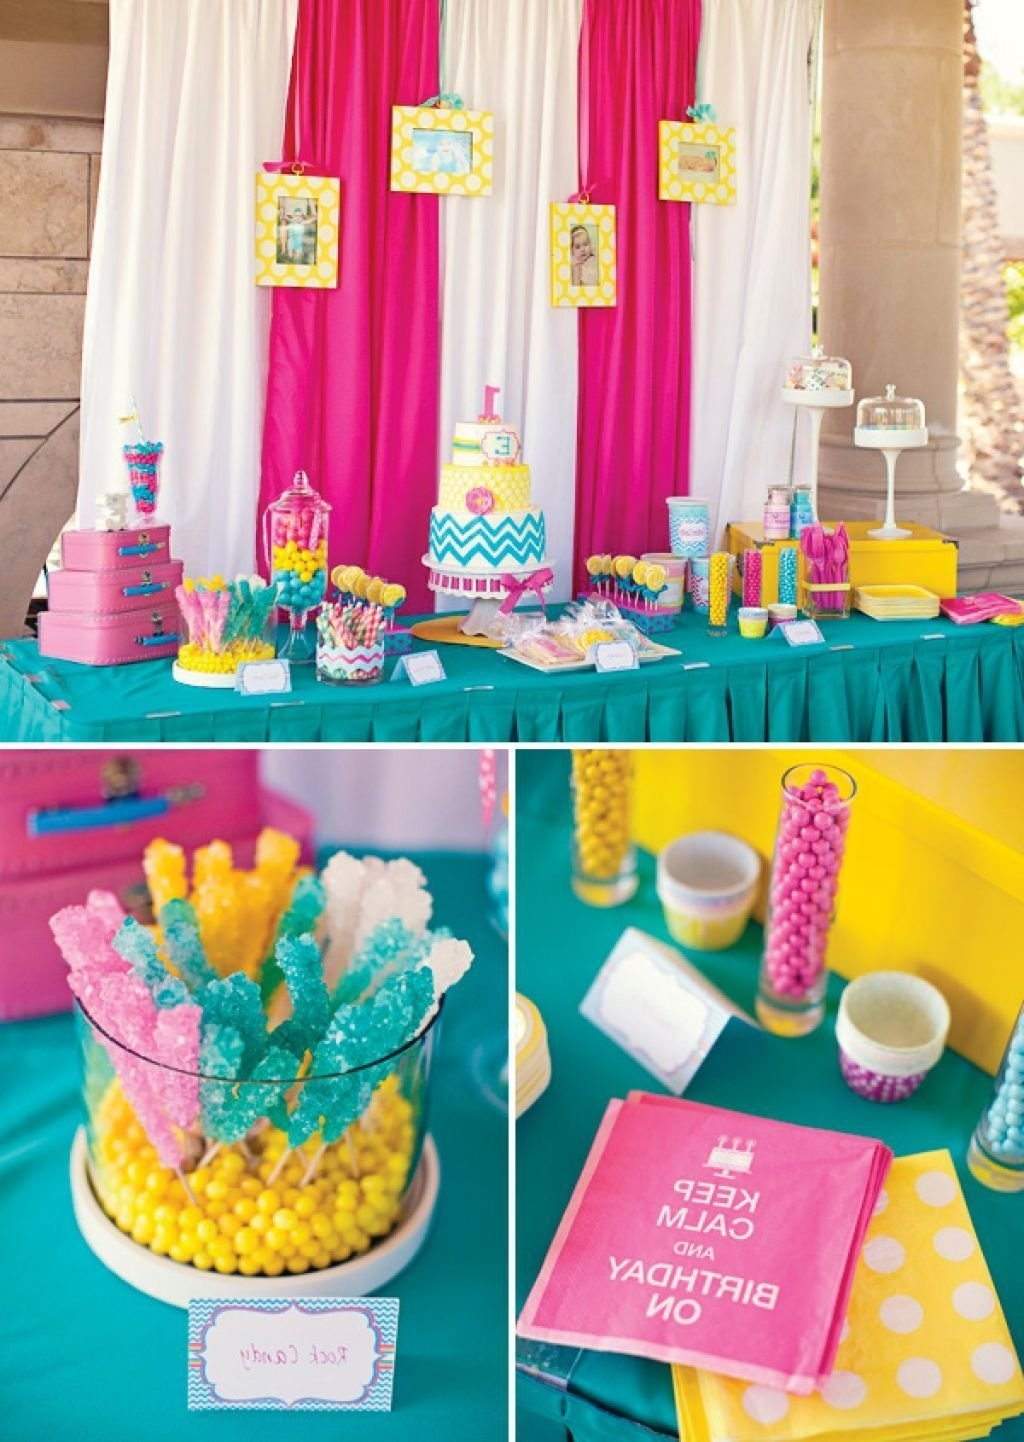 10 Beautiful One Year Old Party Ideas outdoor party decorations google search madeline pinterest 4 2020